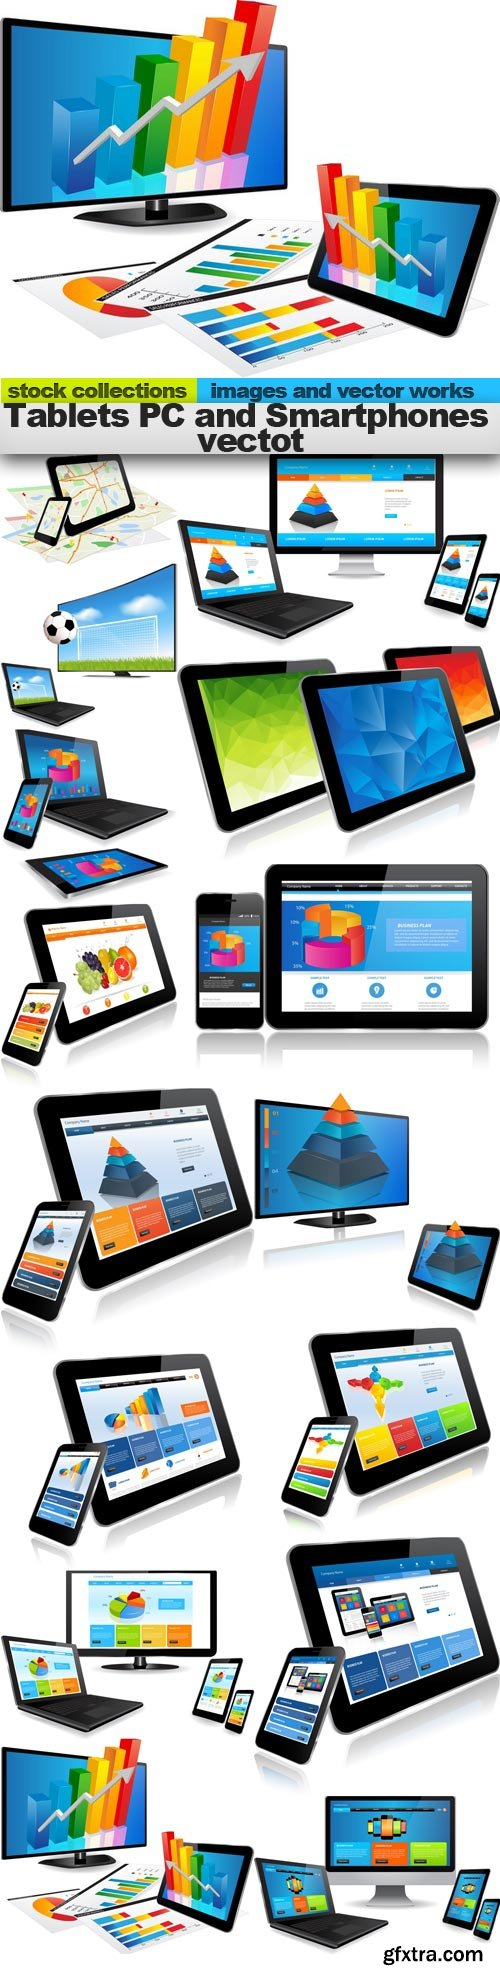 Tablets PC and Smartphones vectot, 15 x EPS